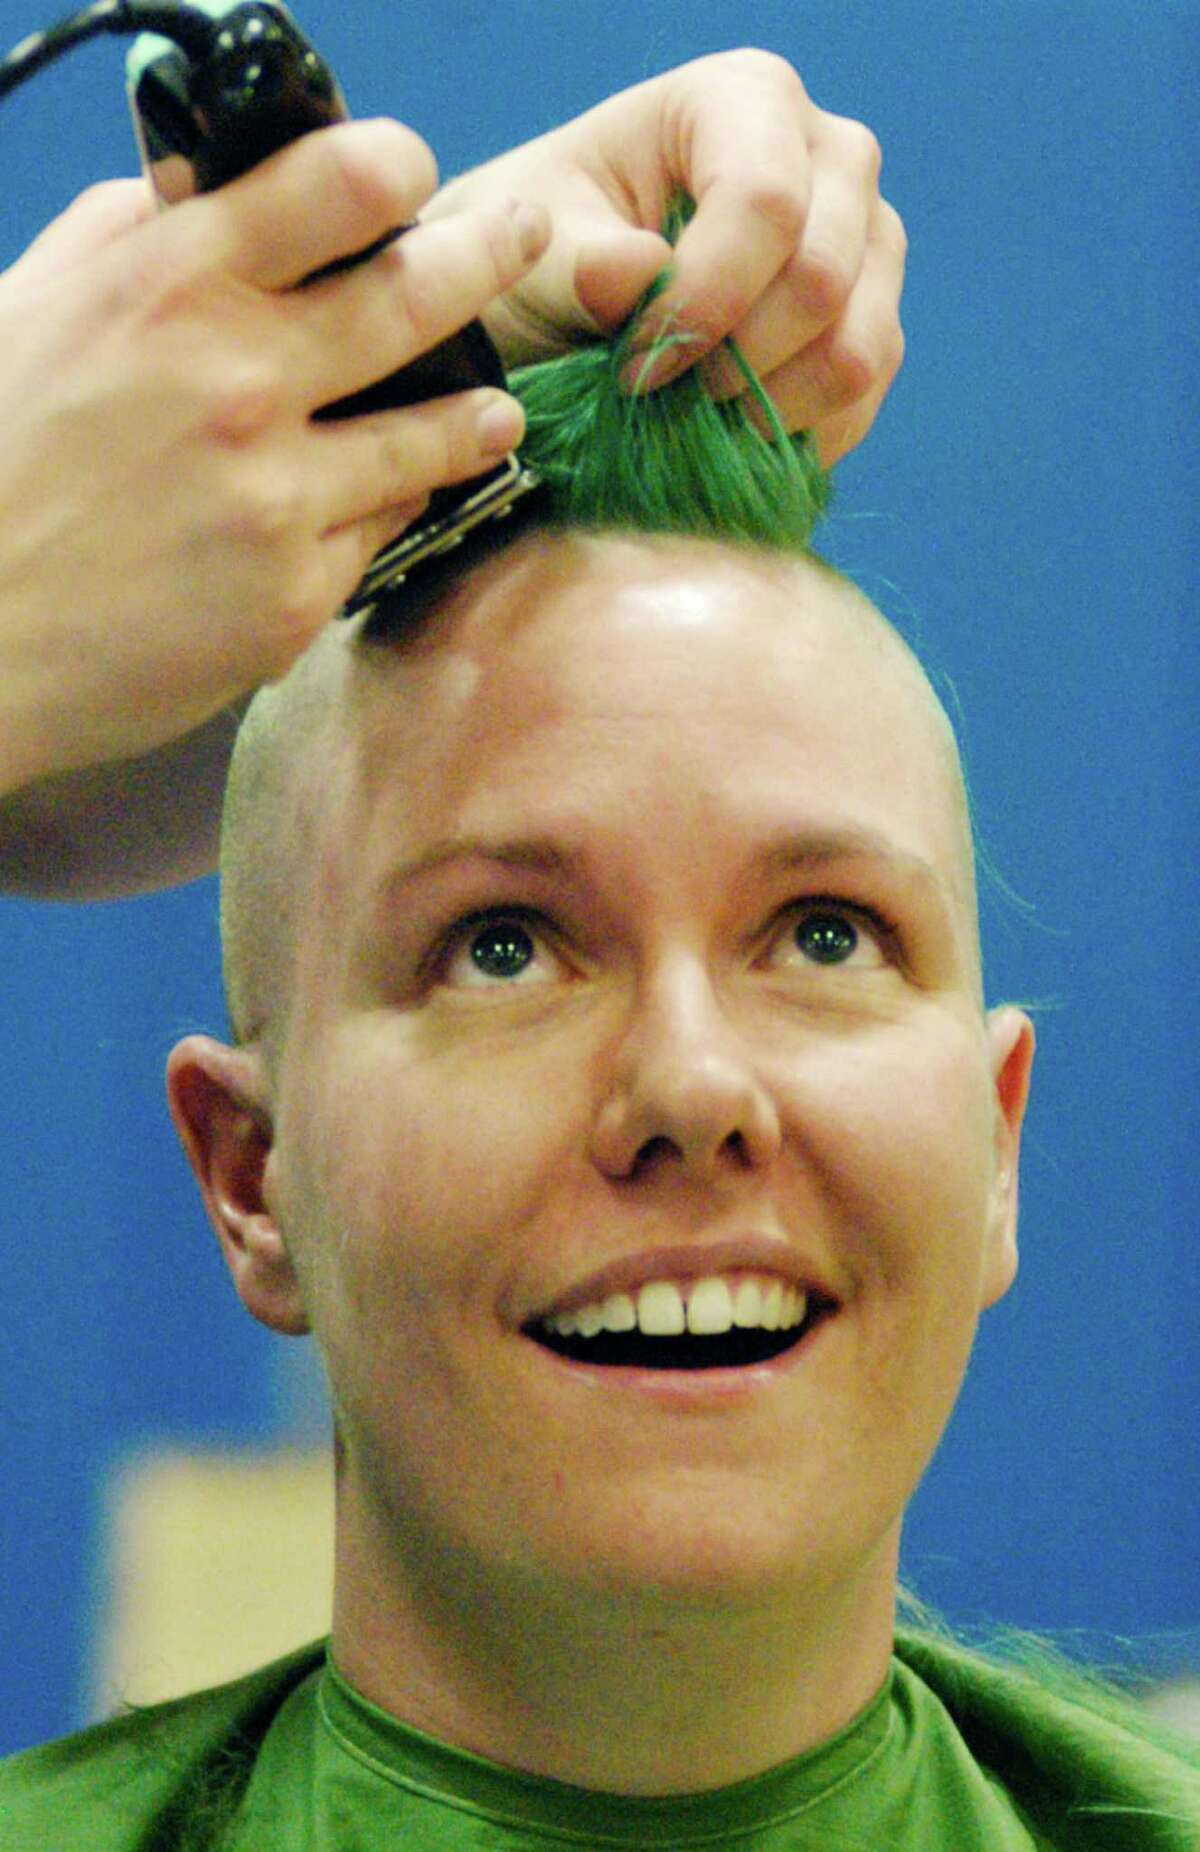 Never let it be said Linda Scoralick lacks moxie. The New Milford High School teacher was one of more than 30 staff and students who had their hair shaved off Monday, March 15, 2015 by area hair stylists to help raise funds for the St. Baldrick's Foundation. The foundation is an international organization that helps fundchildren's cancer research.